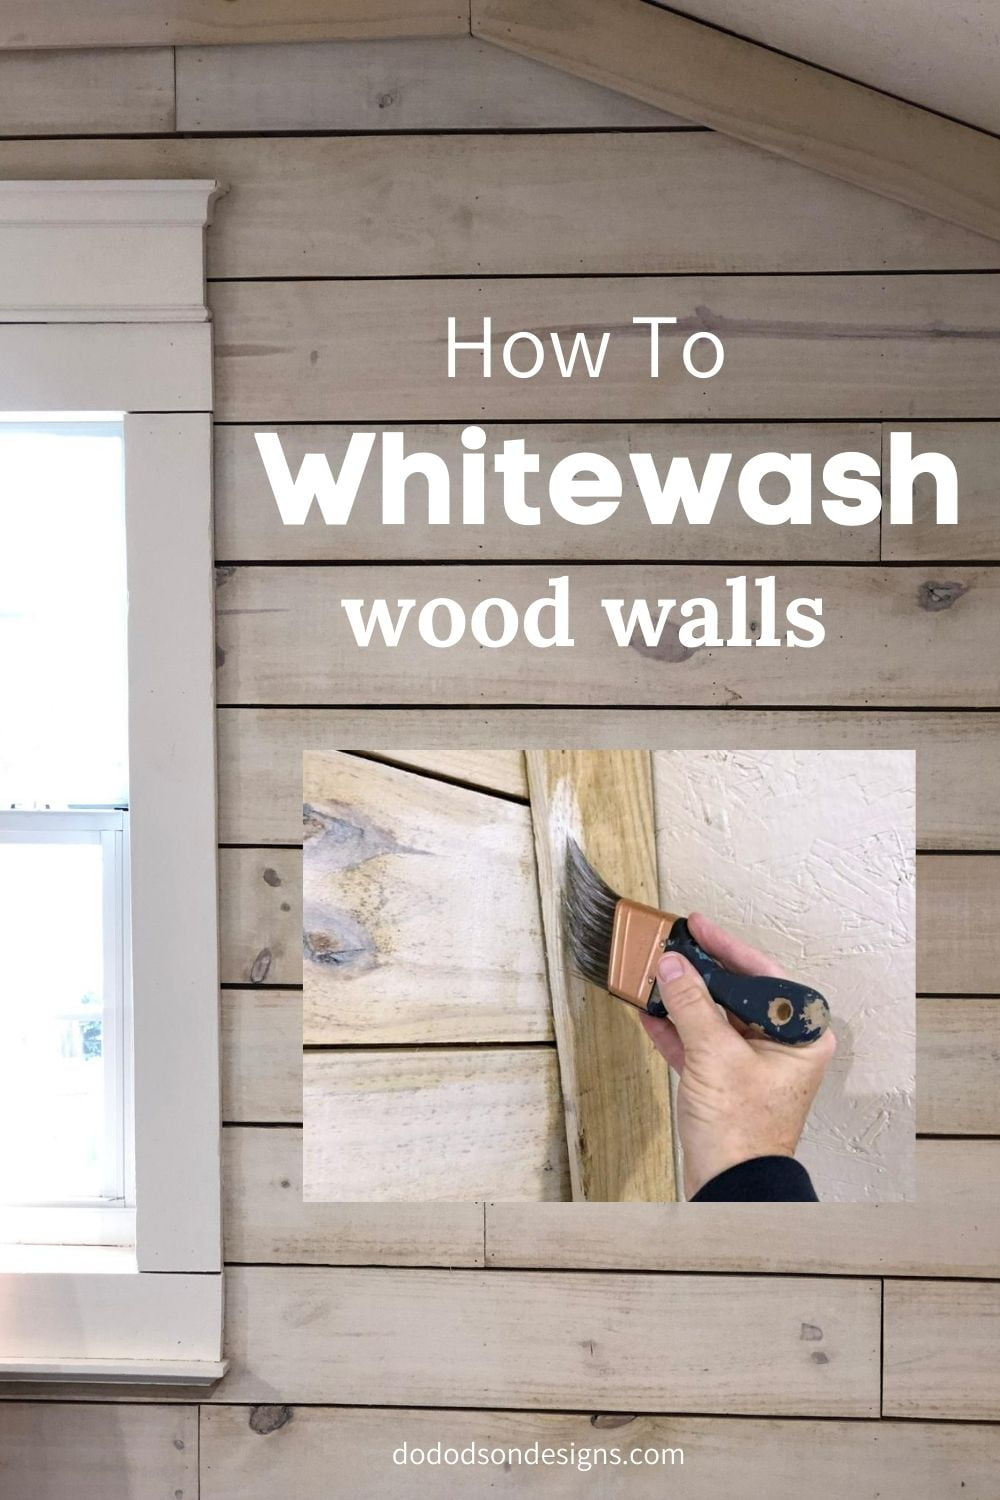 How To Whitewash Wood Walls With Diluted Paint